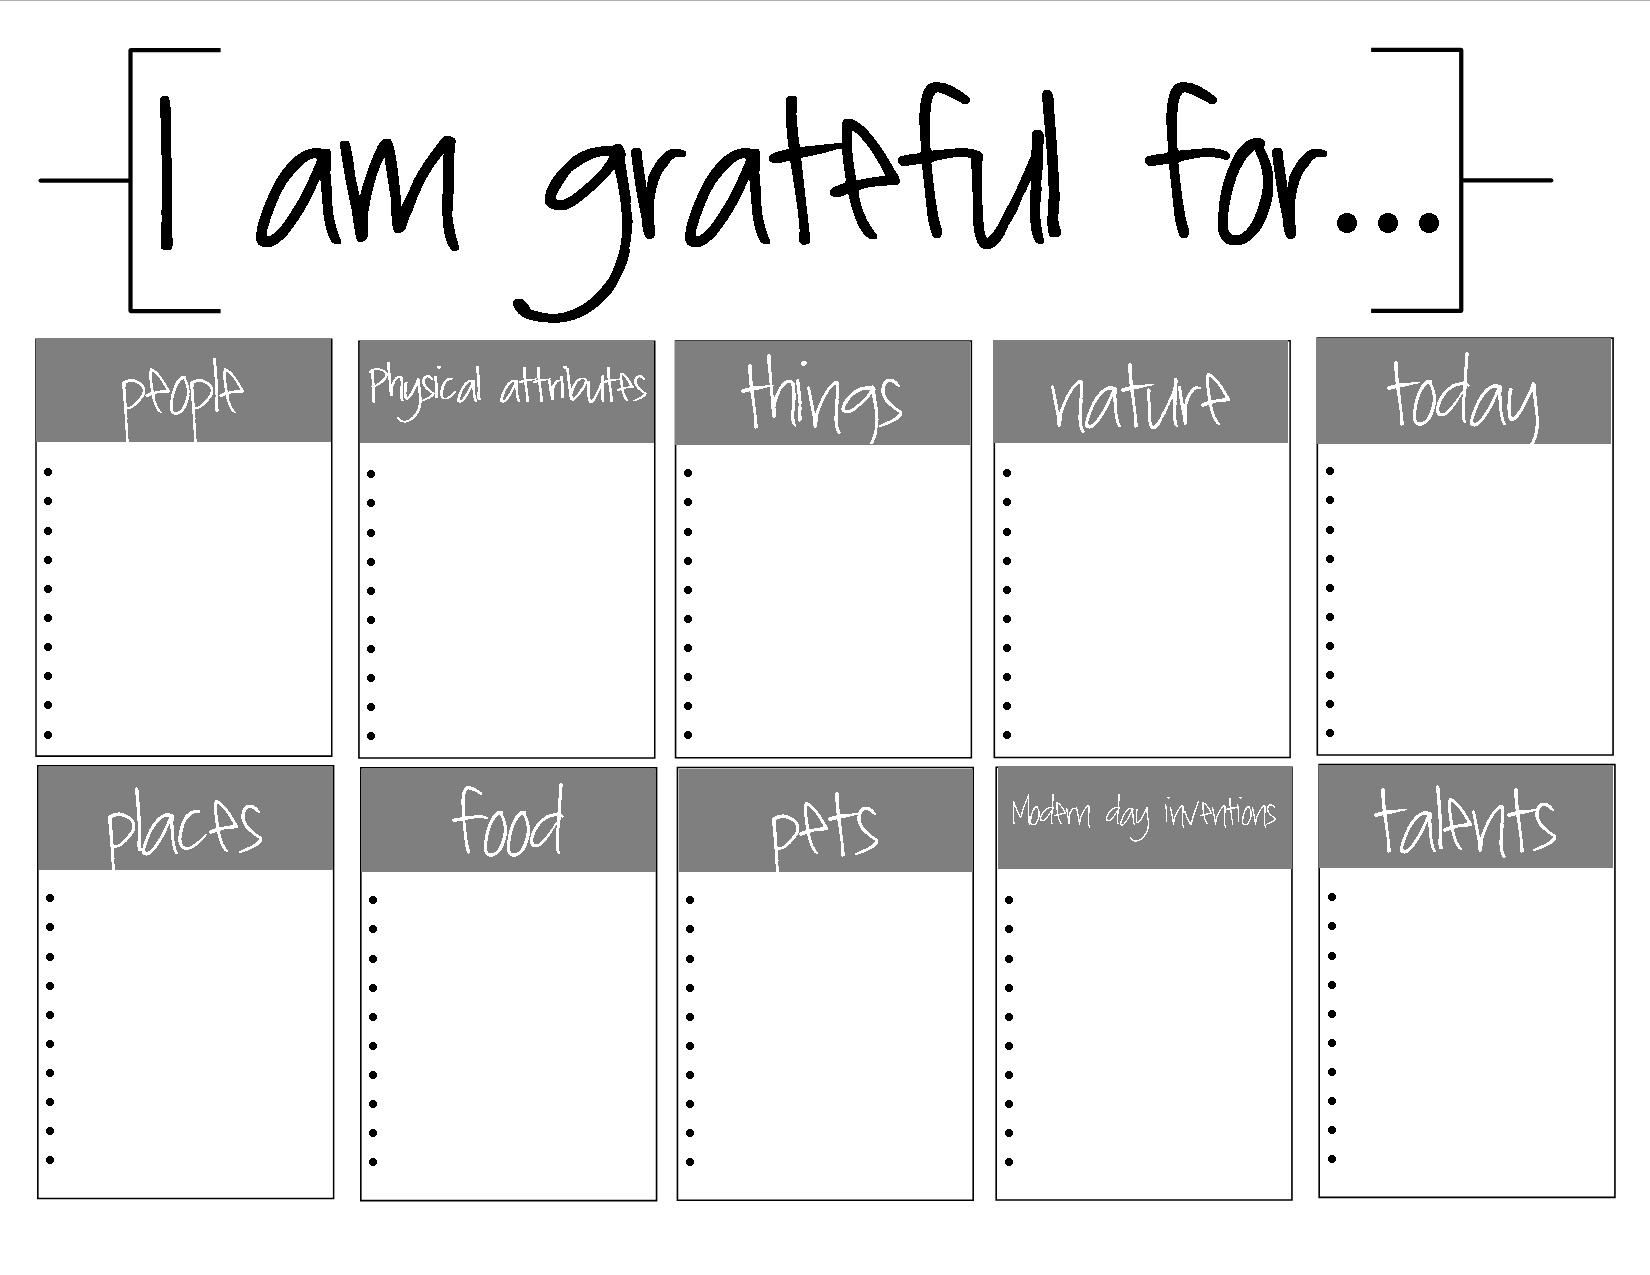 Free Printable 100 Things I Am Grateful For Looks Like A Great Way To Encourage Gratitude